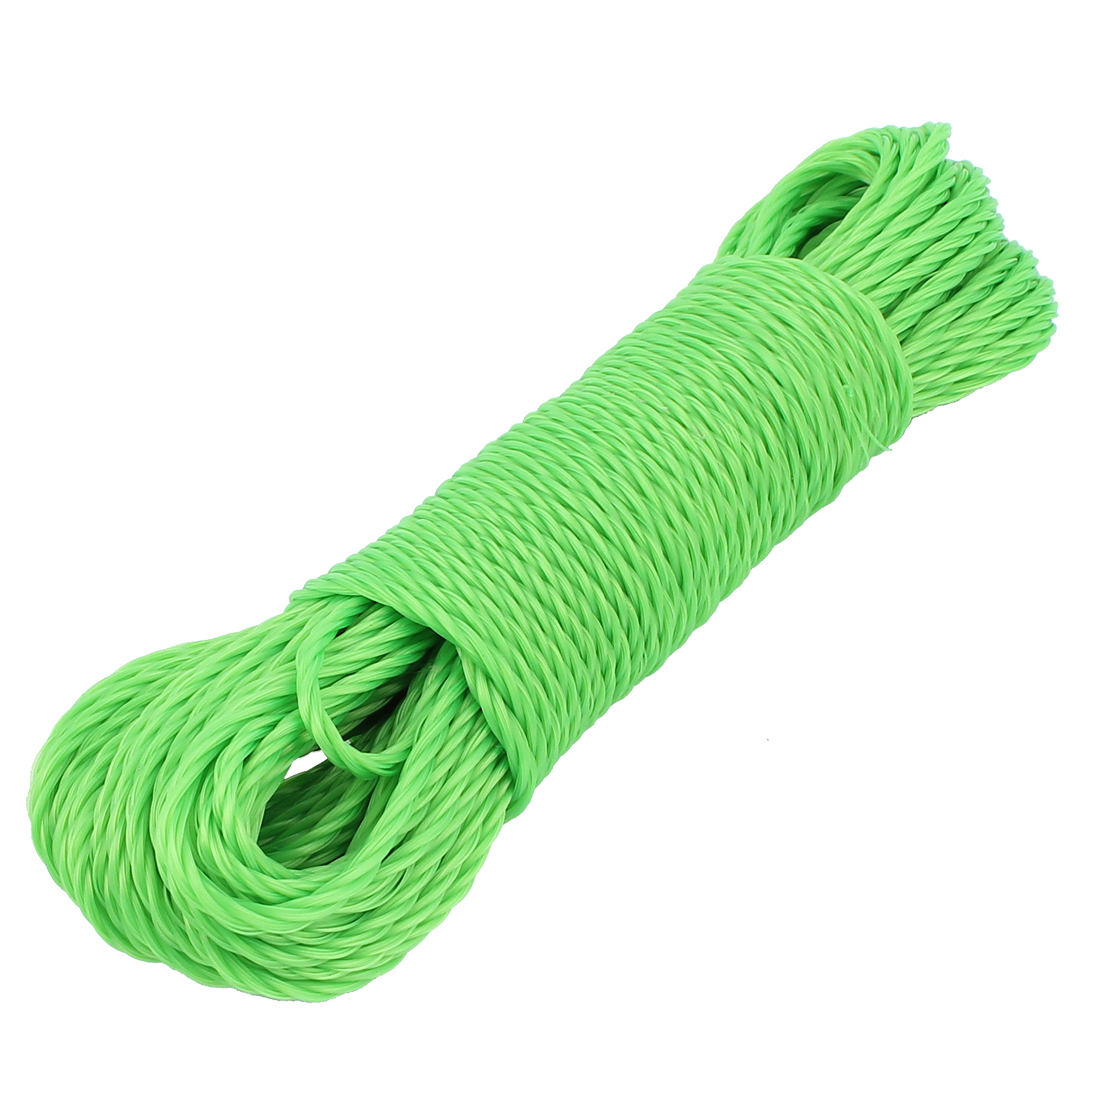 20M Nylon Clothes Line Washing Clothesline Rope Laundry Dryer Green